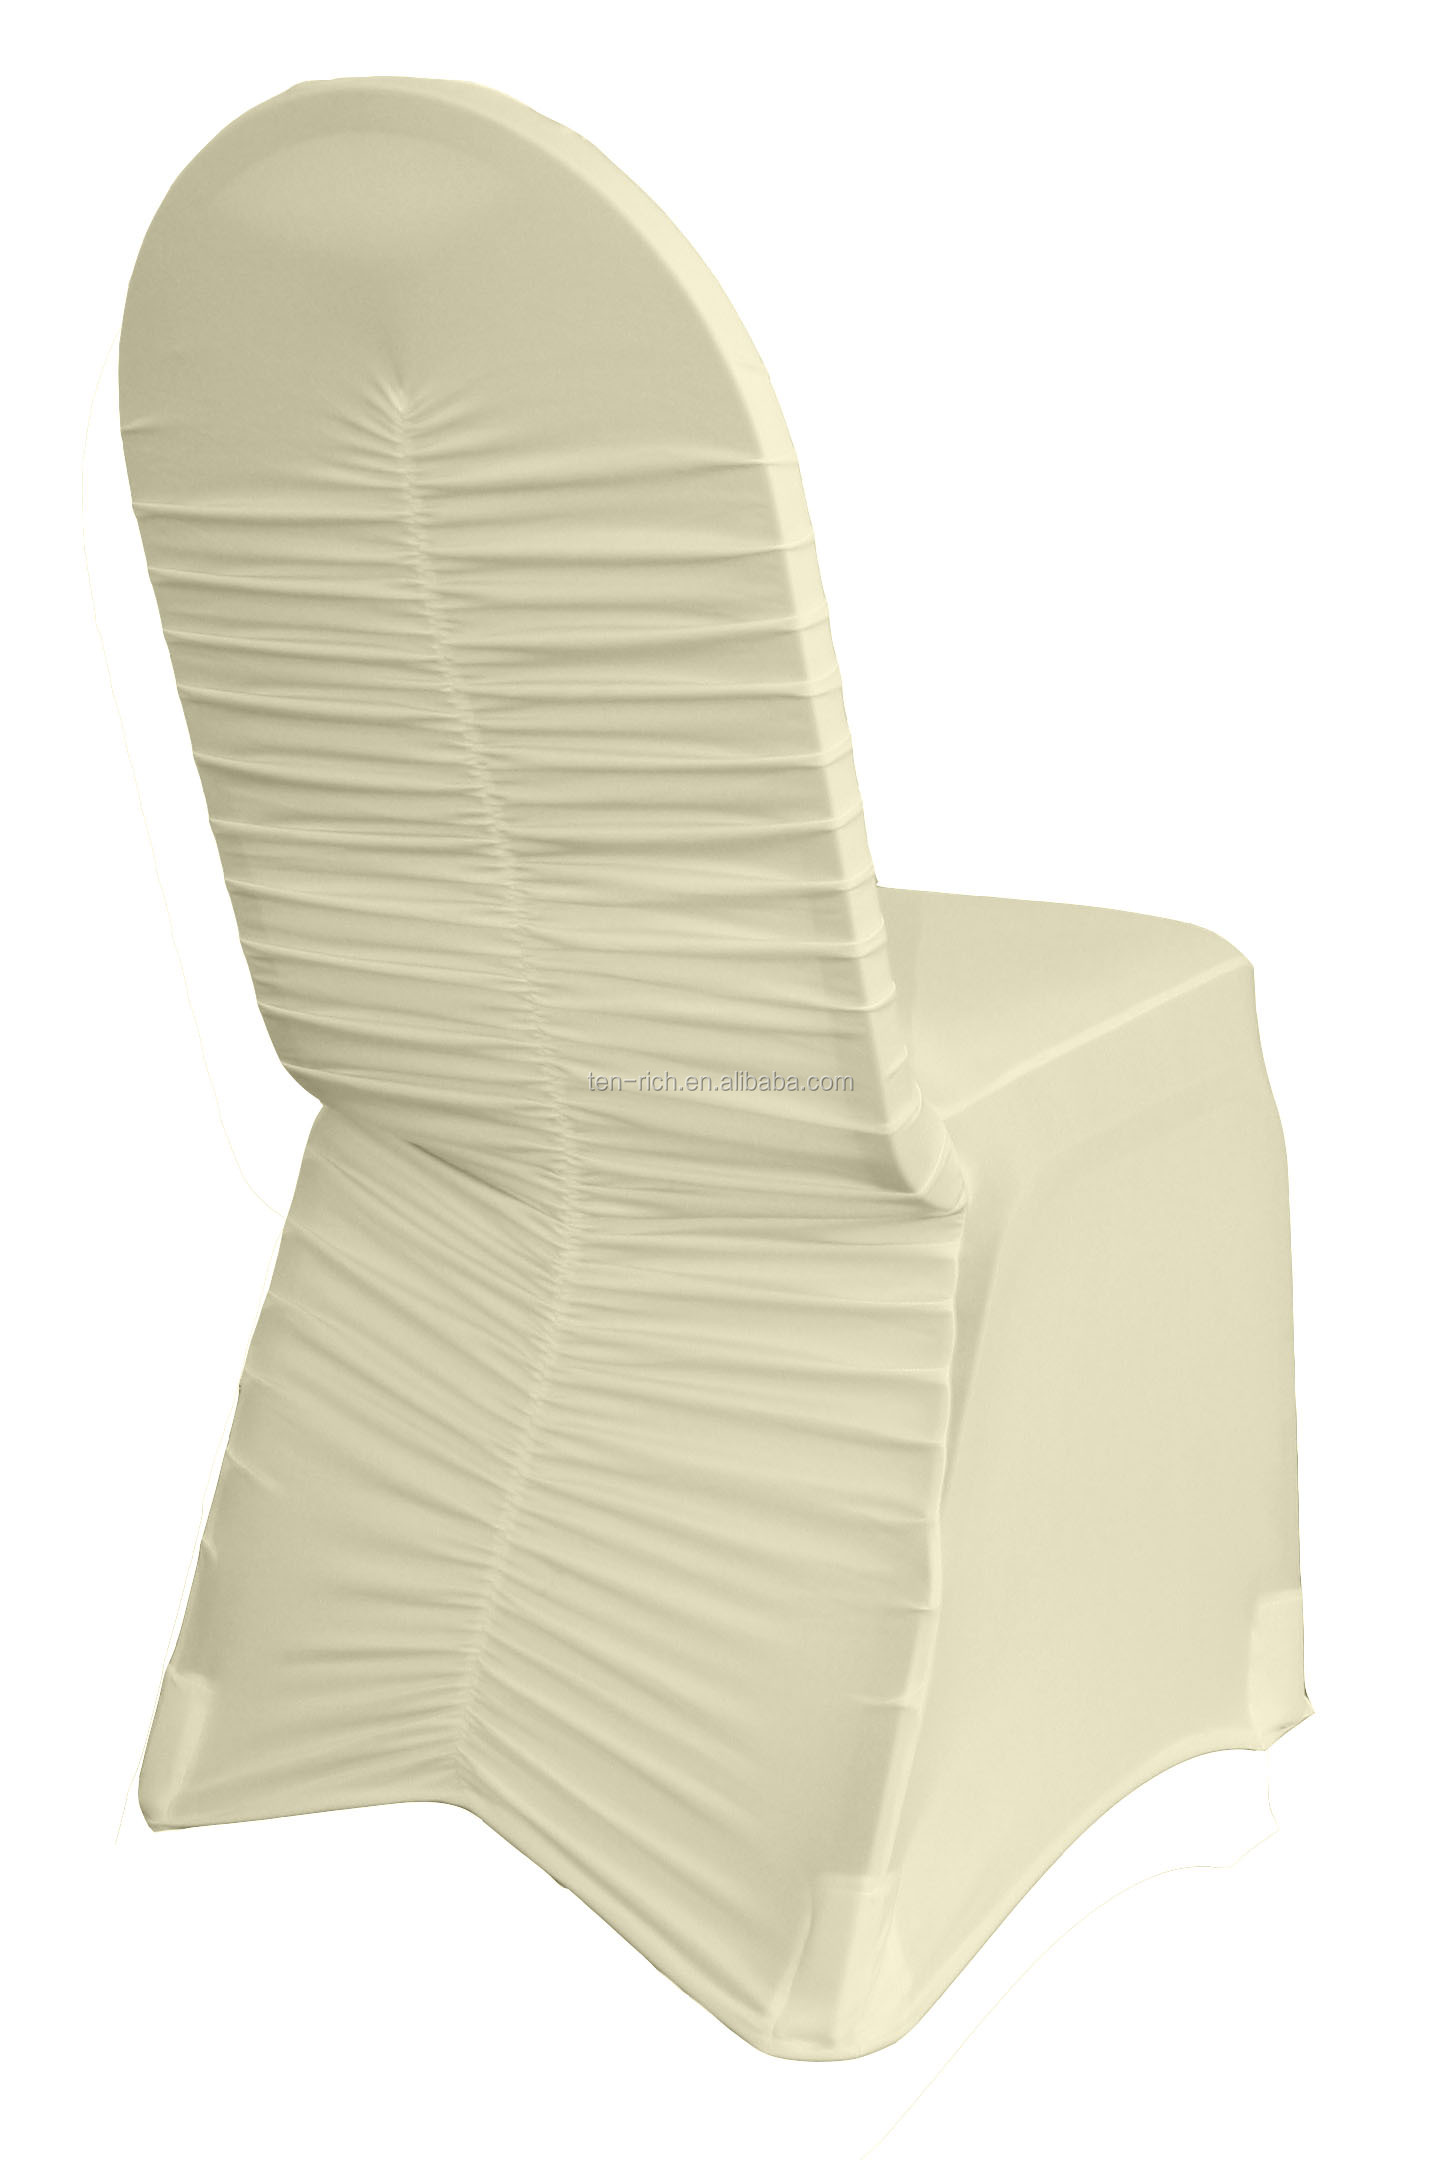 Cross Back Chair Cover Cross Back Chair Cover Suppliers and